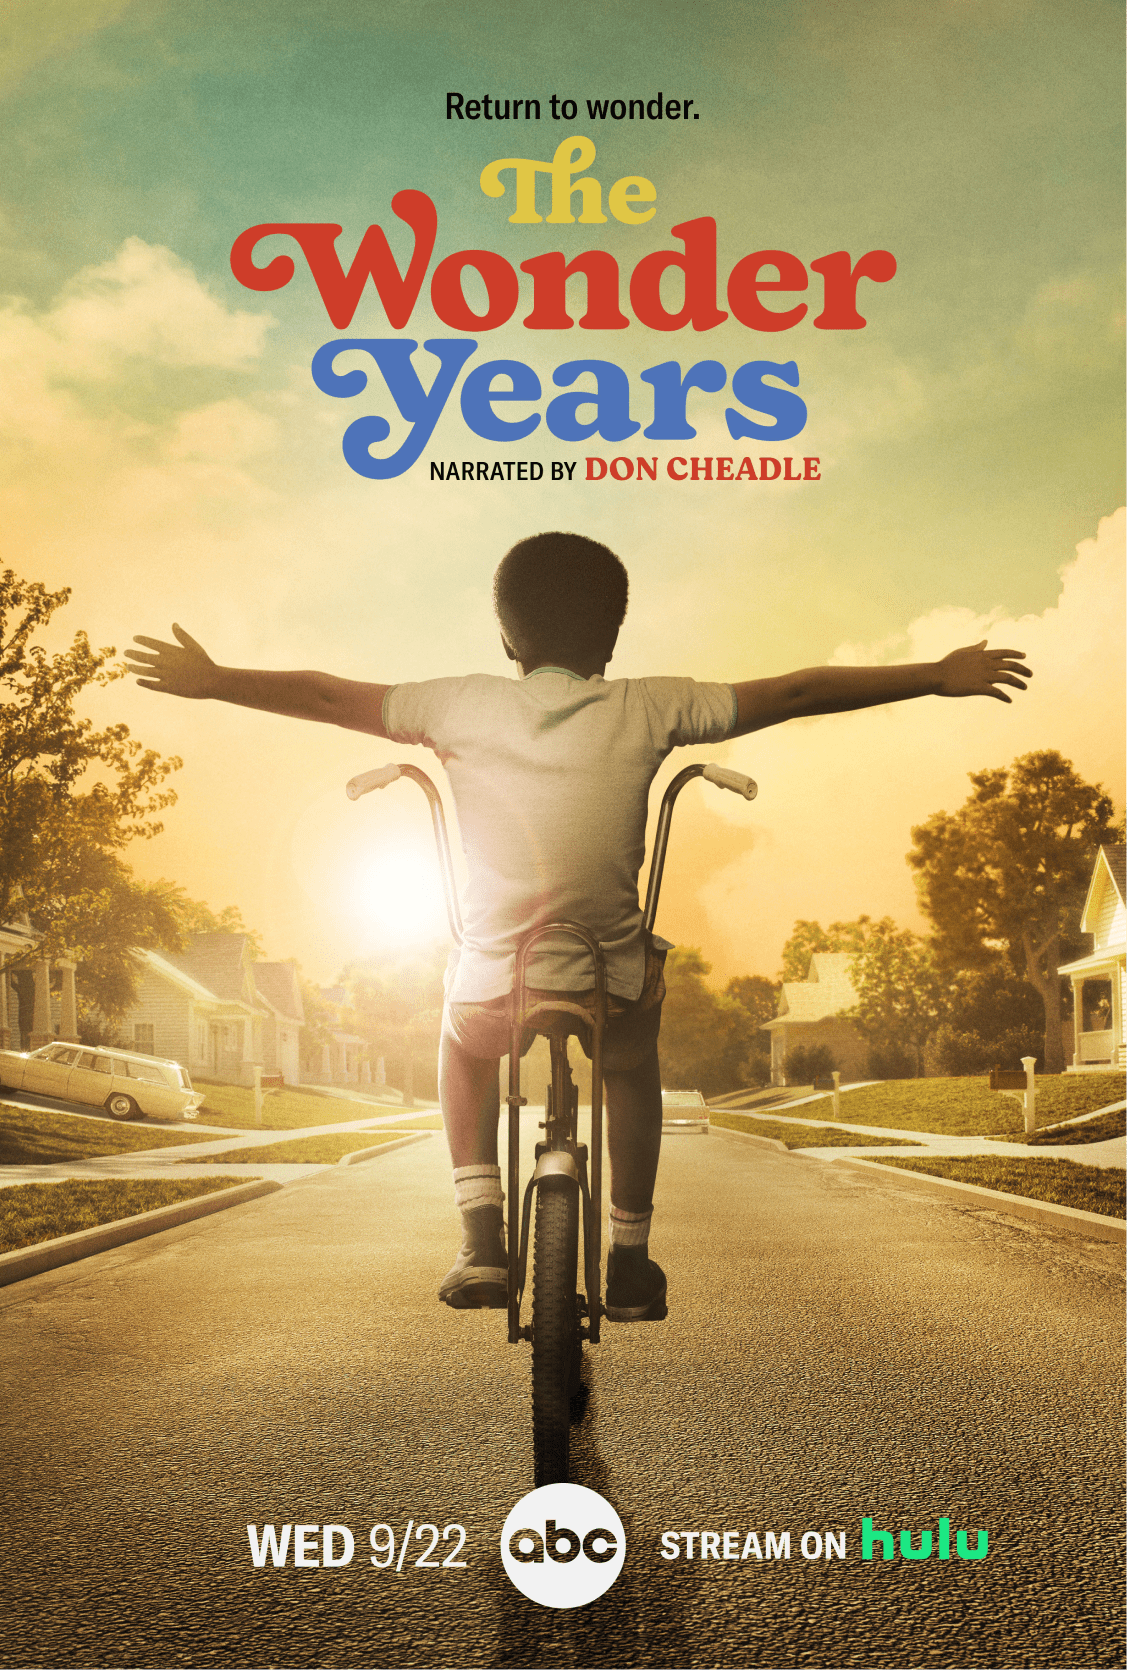 Ten Things I Learned From The Wonder Years Exclusive Virtual Premiere Event